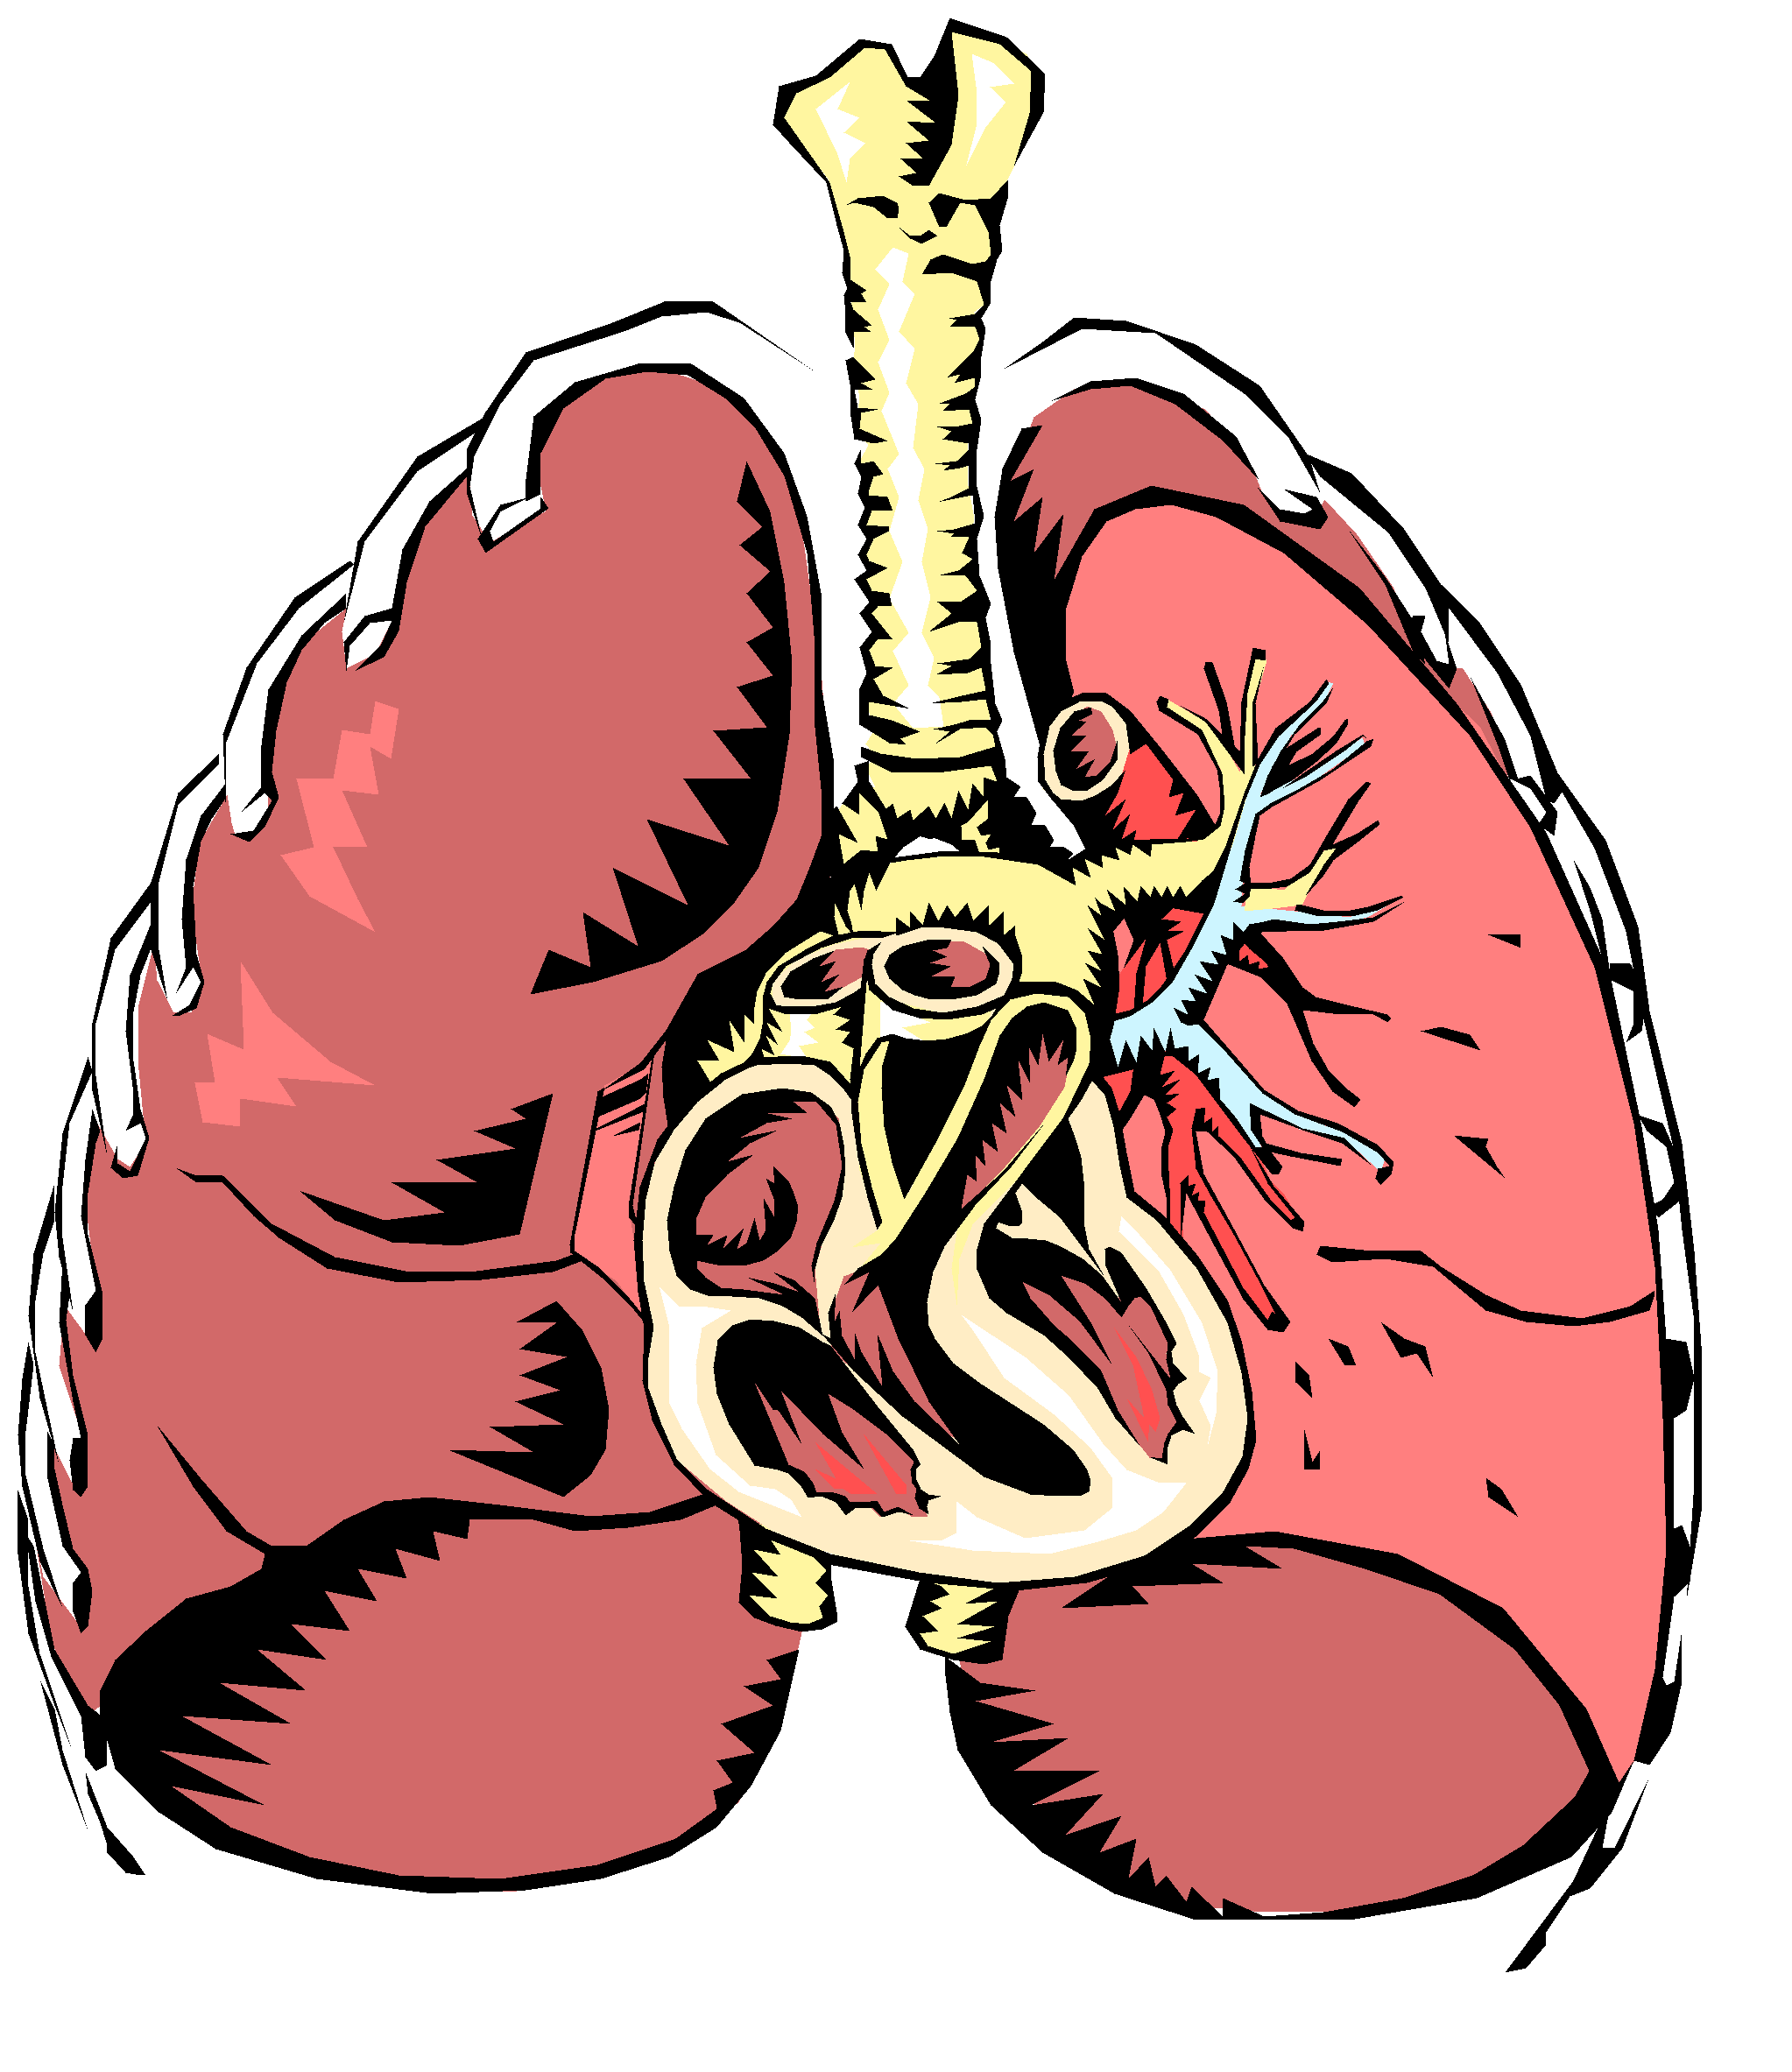 Circulatory system drawing at. Lungs clipart respiration